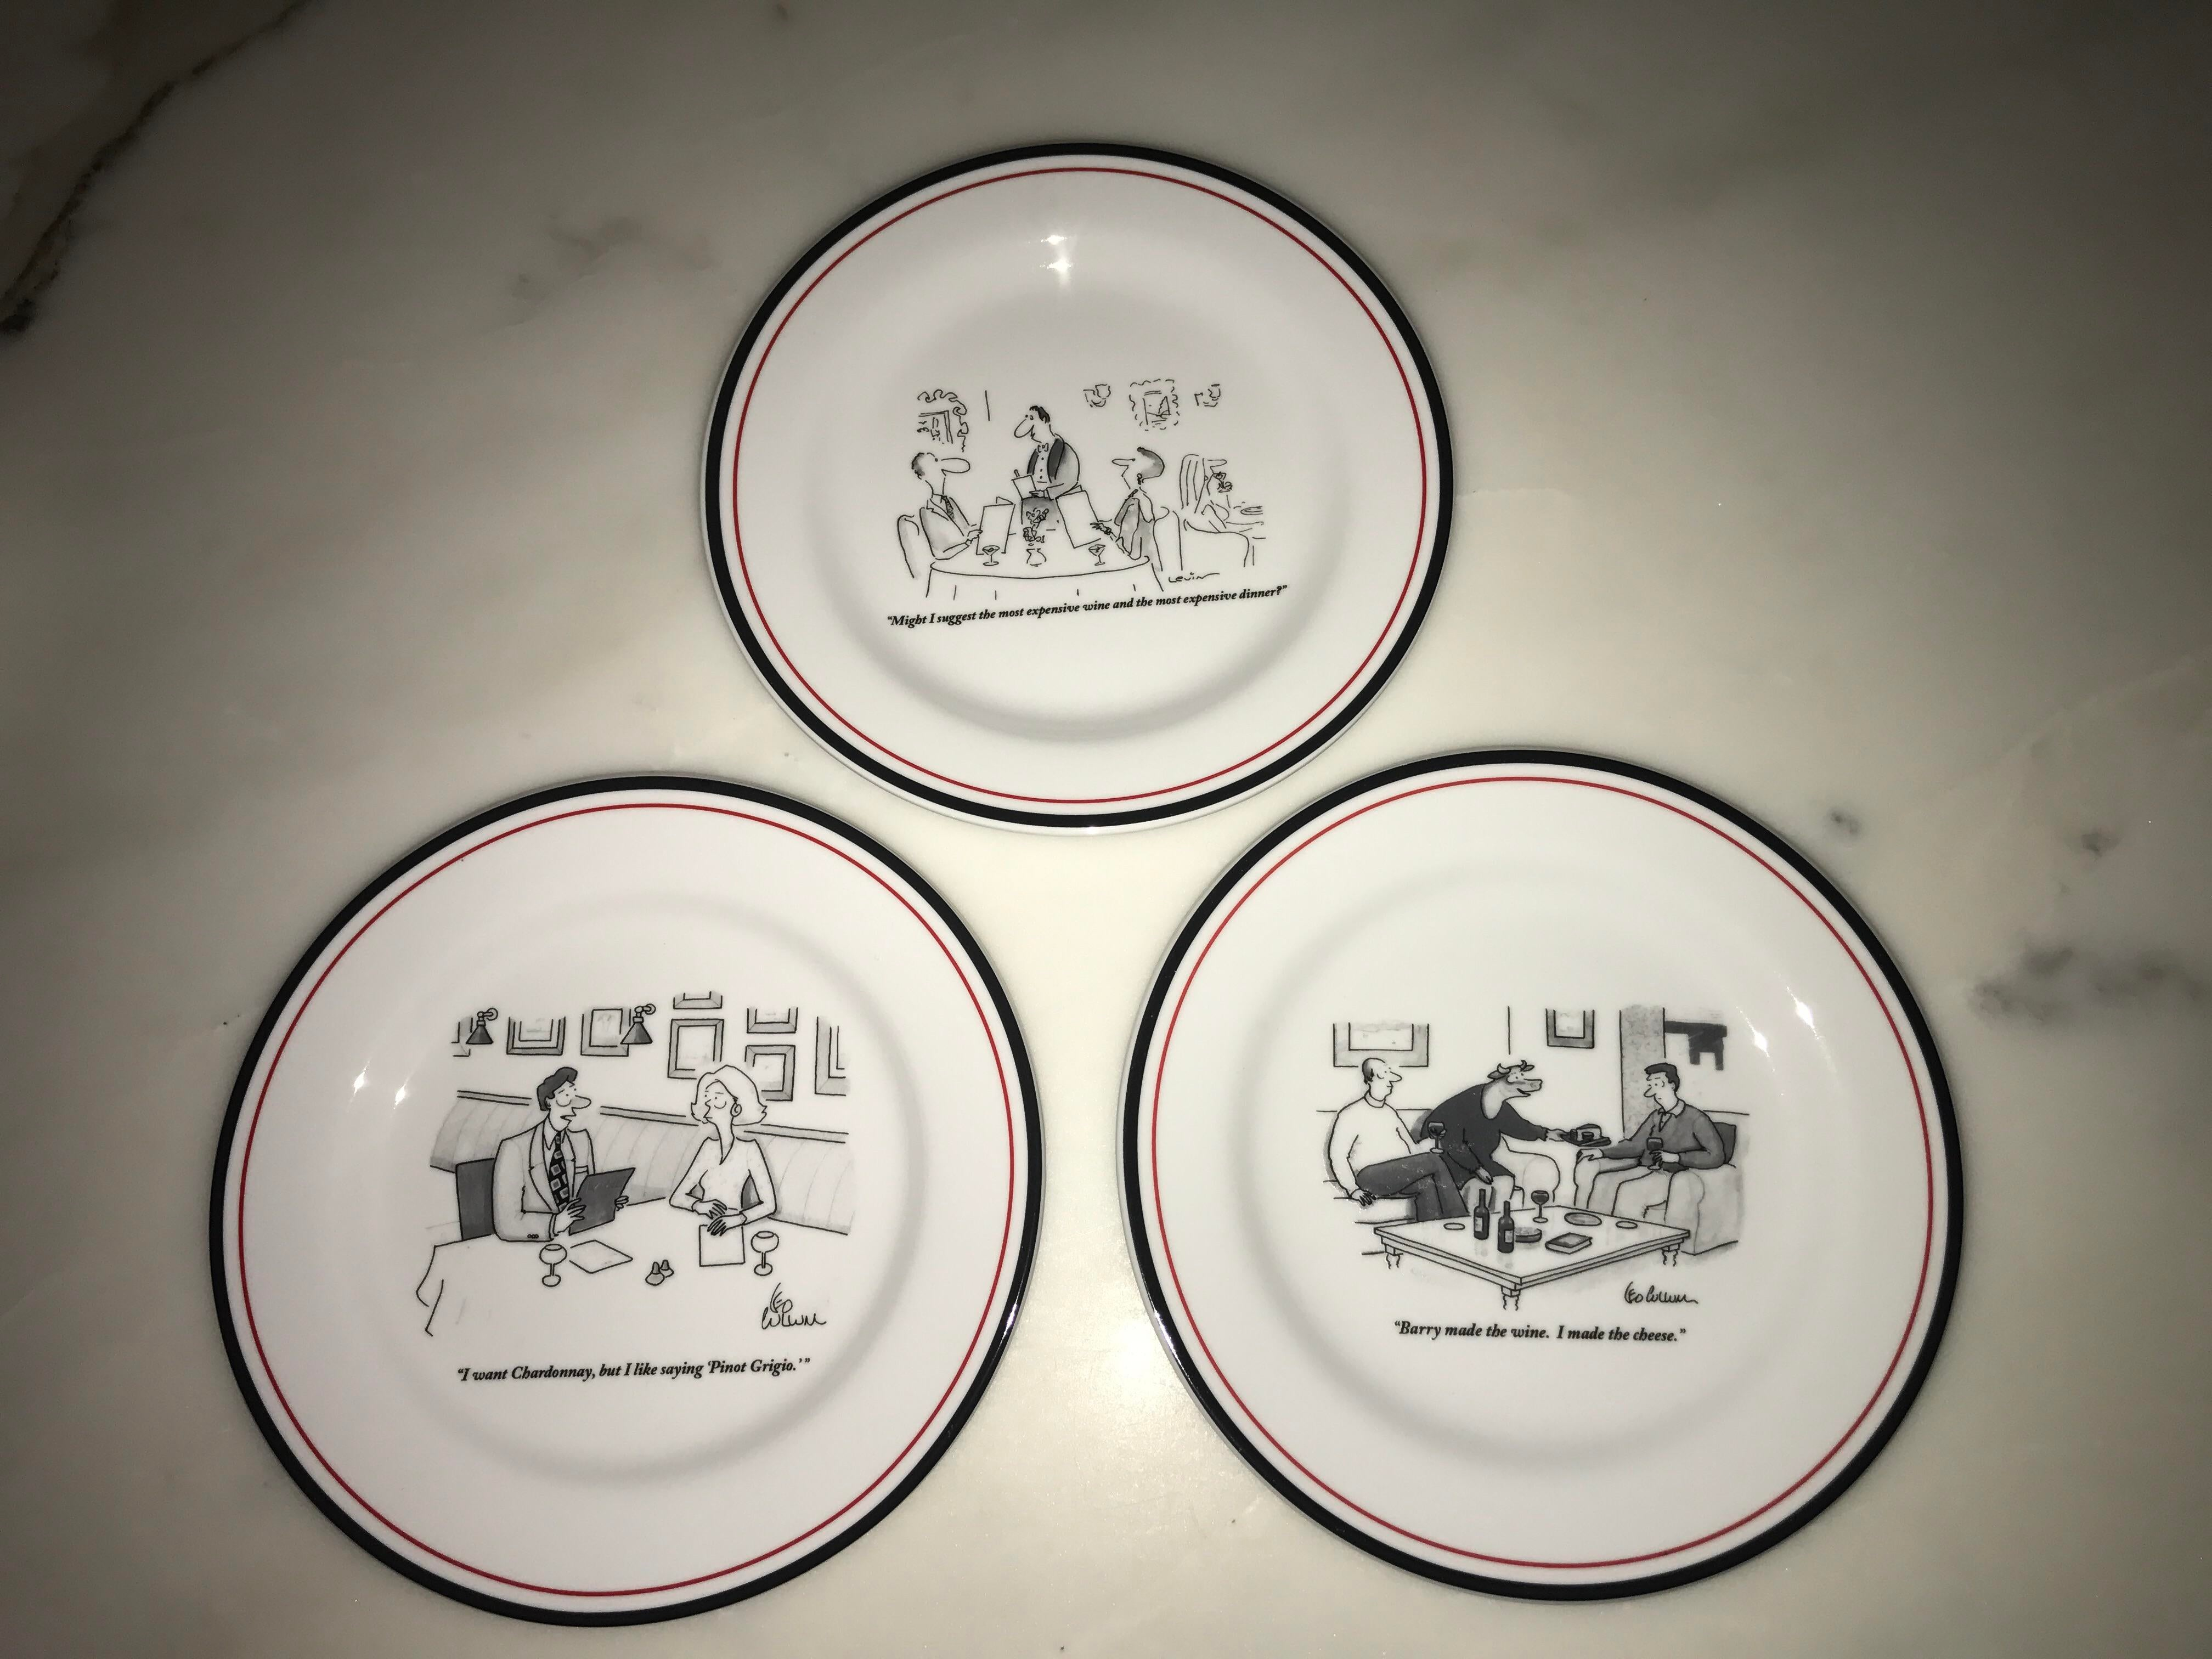 Restoration Hardware The New Yorker Cheese Plates - Set of 6 - Image 4 of 7  sc 1 st  Chairish & Restoration Hardware The New Yorker Cheese Plates - Set of 6 | Chairish